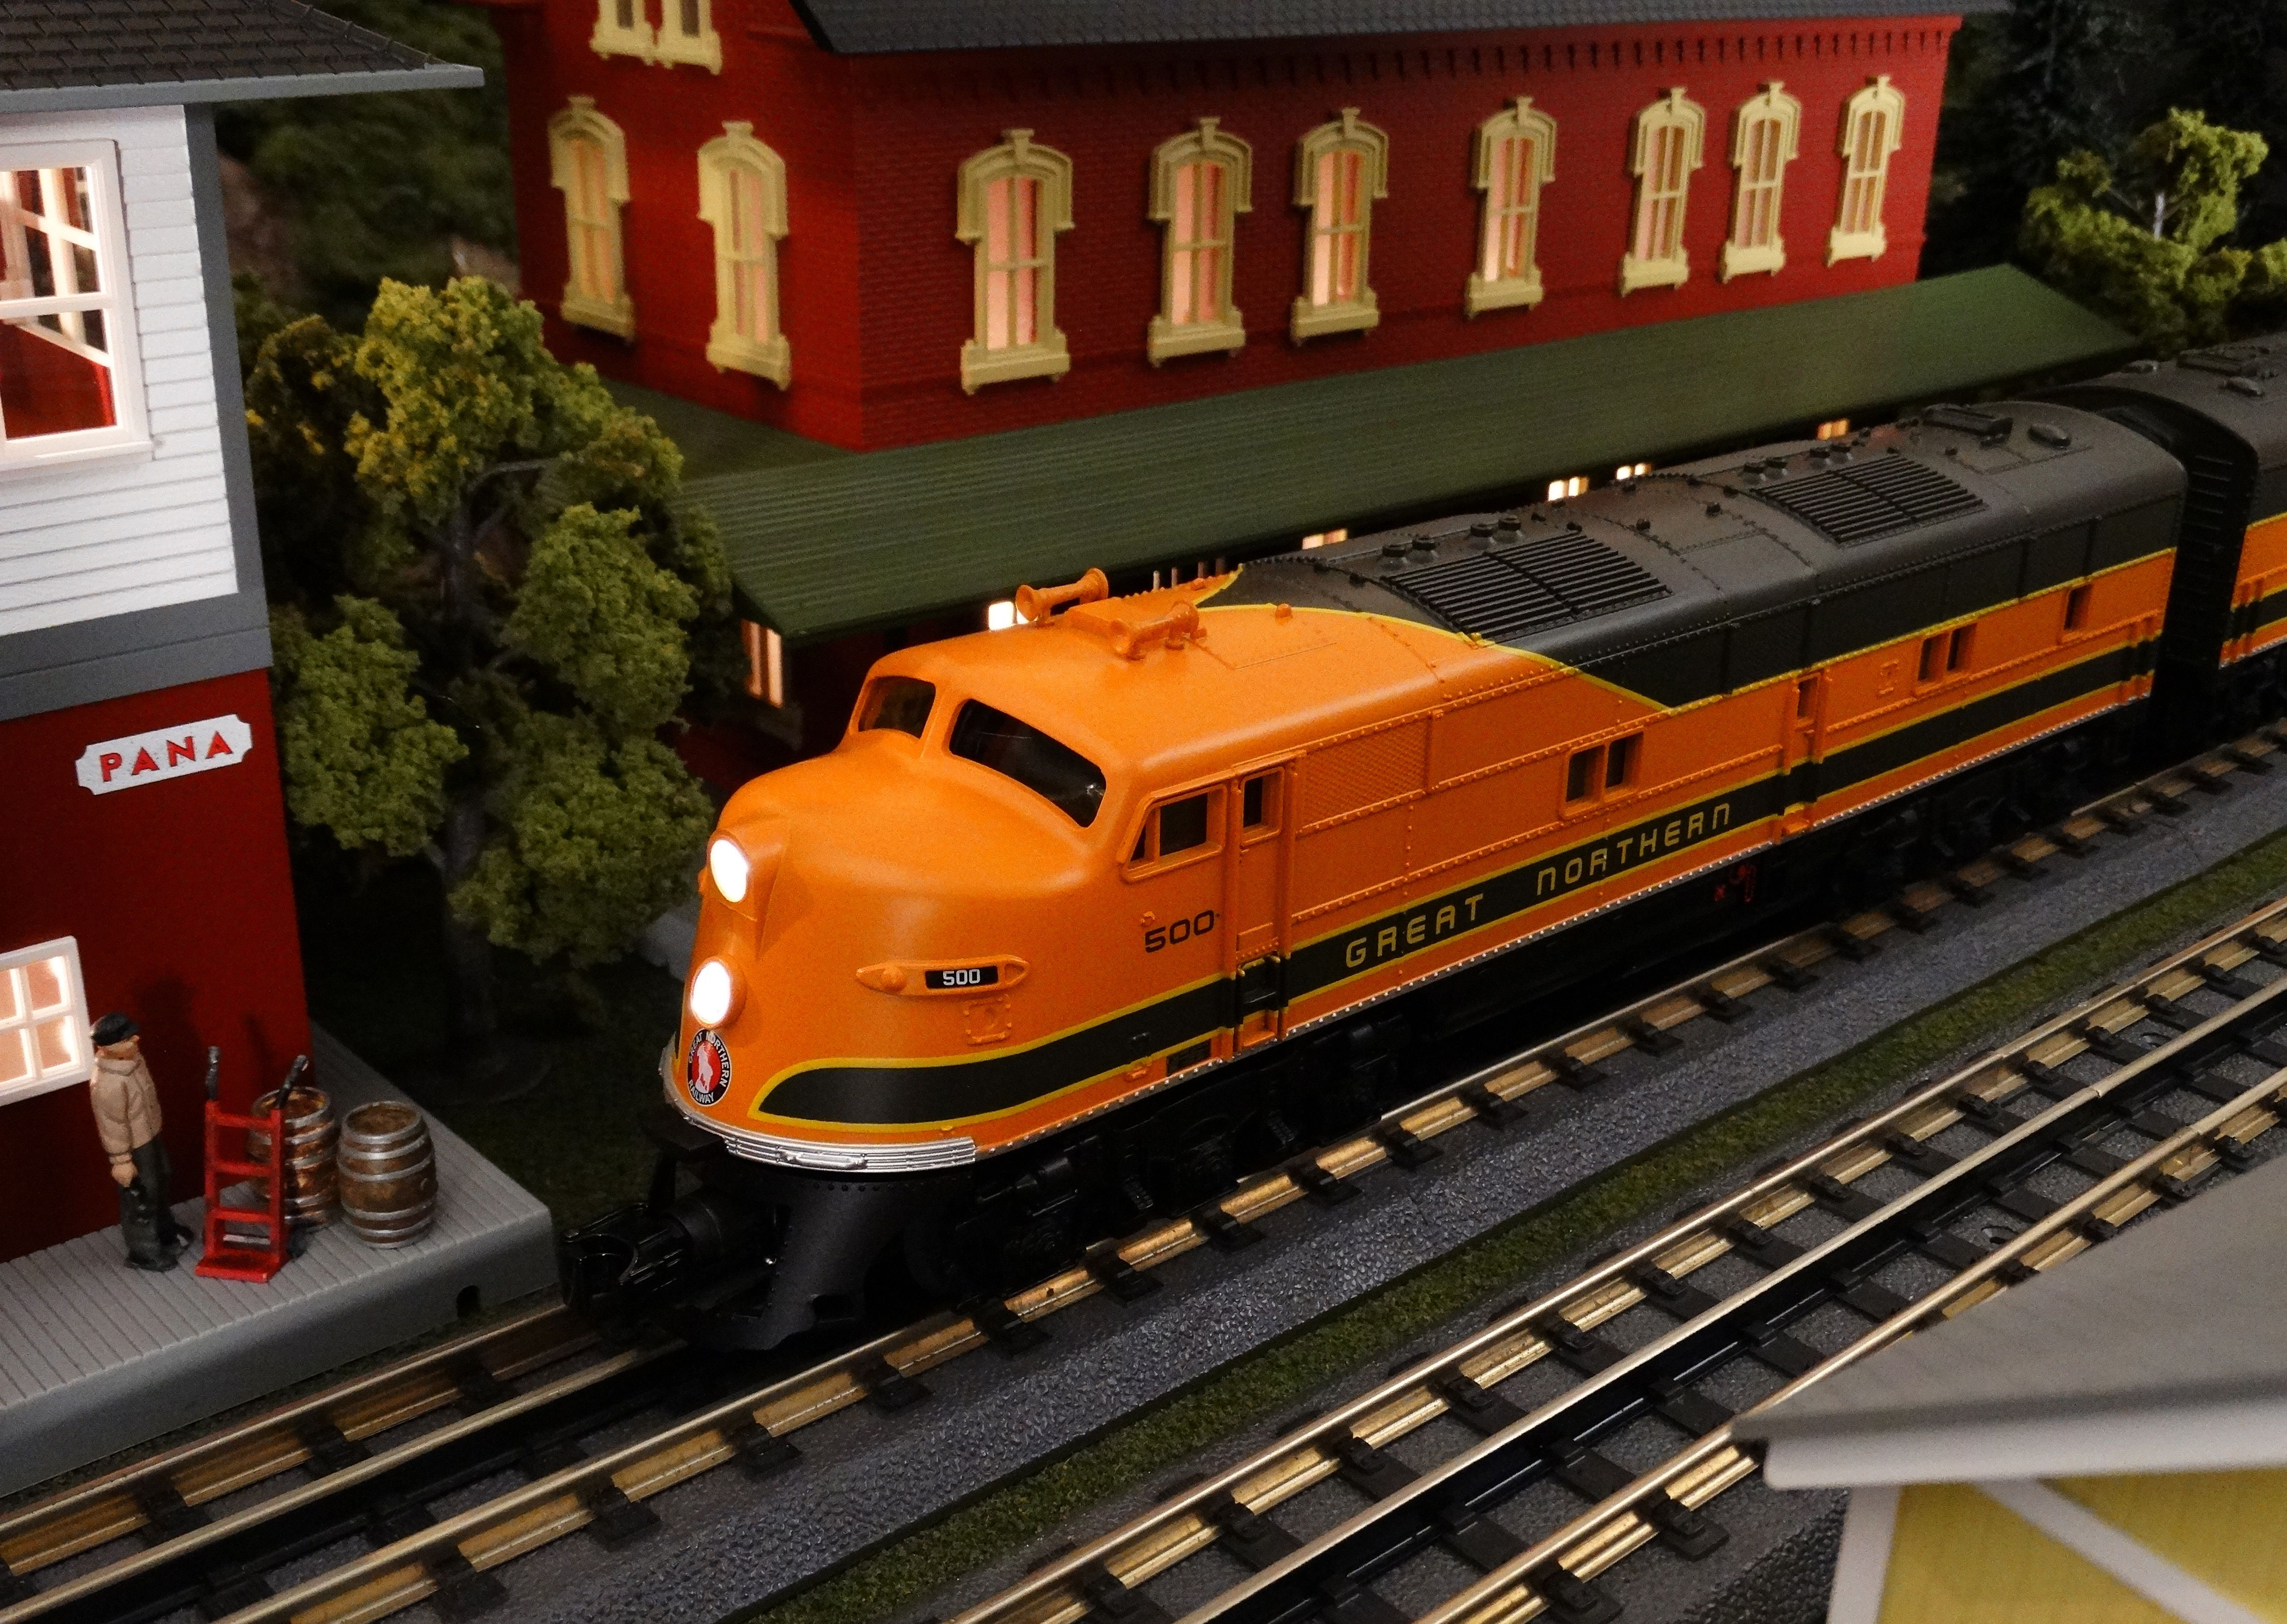 Find It Locally http://www.mthtrains.com/30-20251-1 Now arriving MTH RailKing O Gauge Great Northern E6 AA Set item 30-20251-1. This Great Northern E6 Set operates on O-31 Curves and have a MSRP of $369.95. Ask your MTH Dealer about a RailKing Diesel Today. Use the link above to Find It Locally at a MTH Dealer.